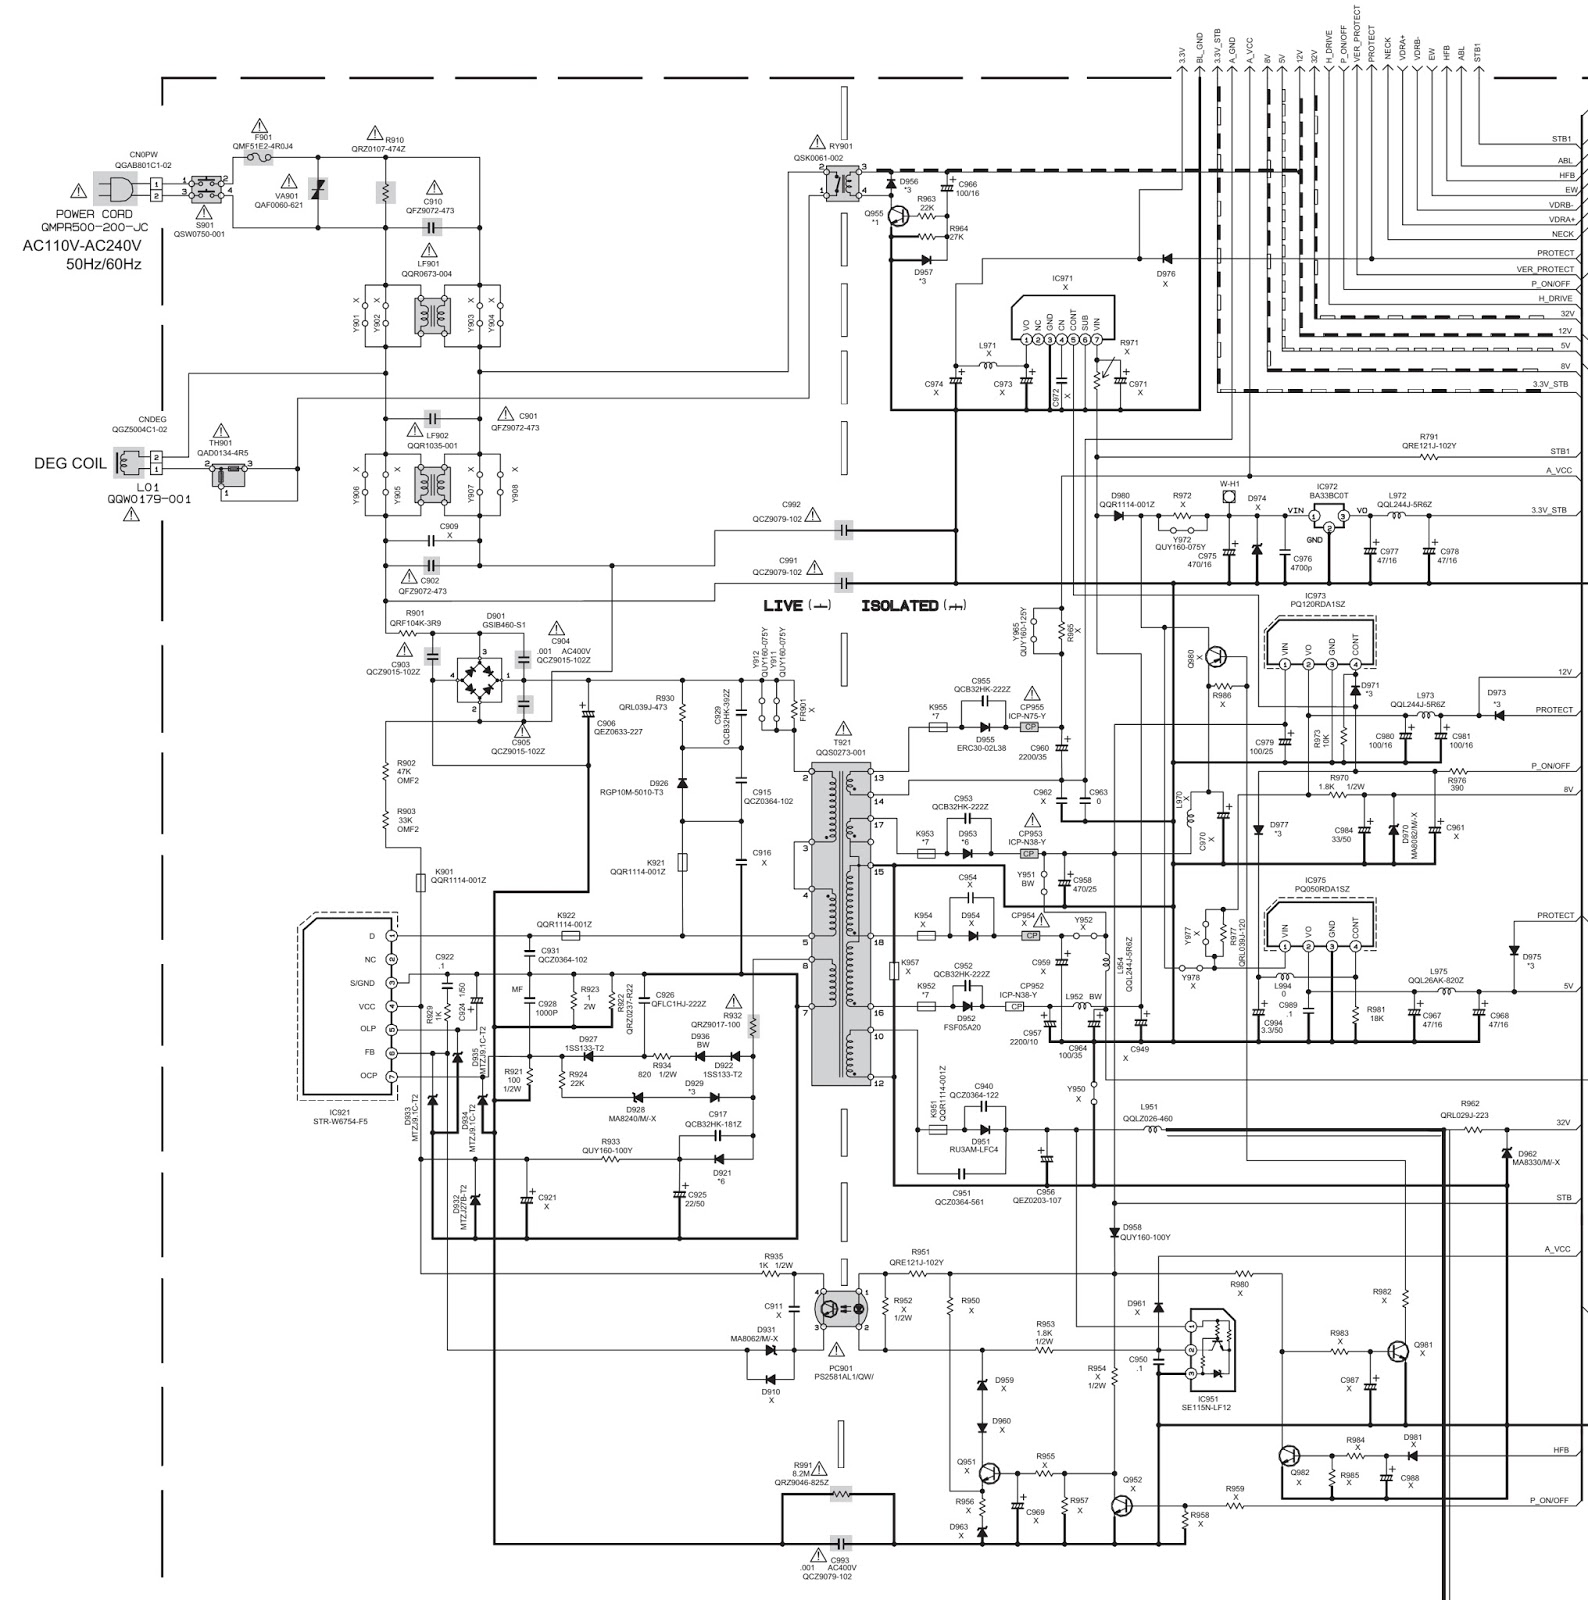 schematic diagram jvc av n29101 tv